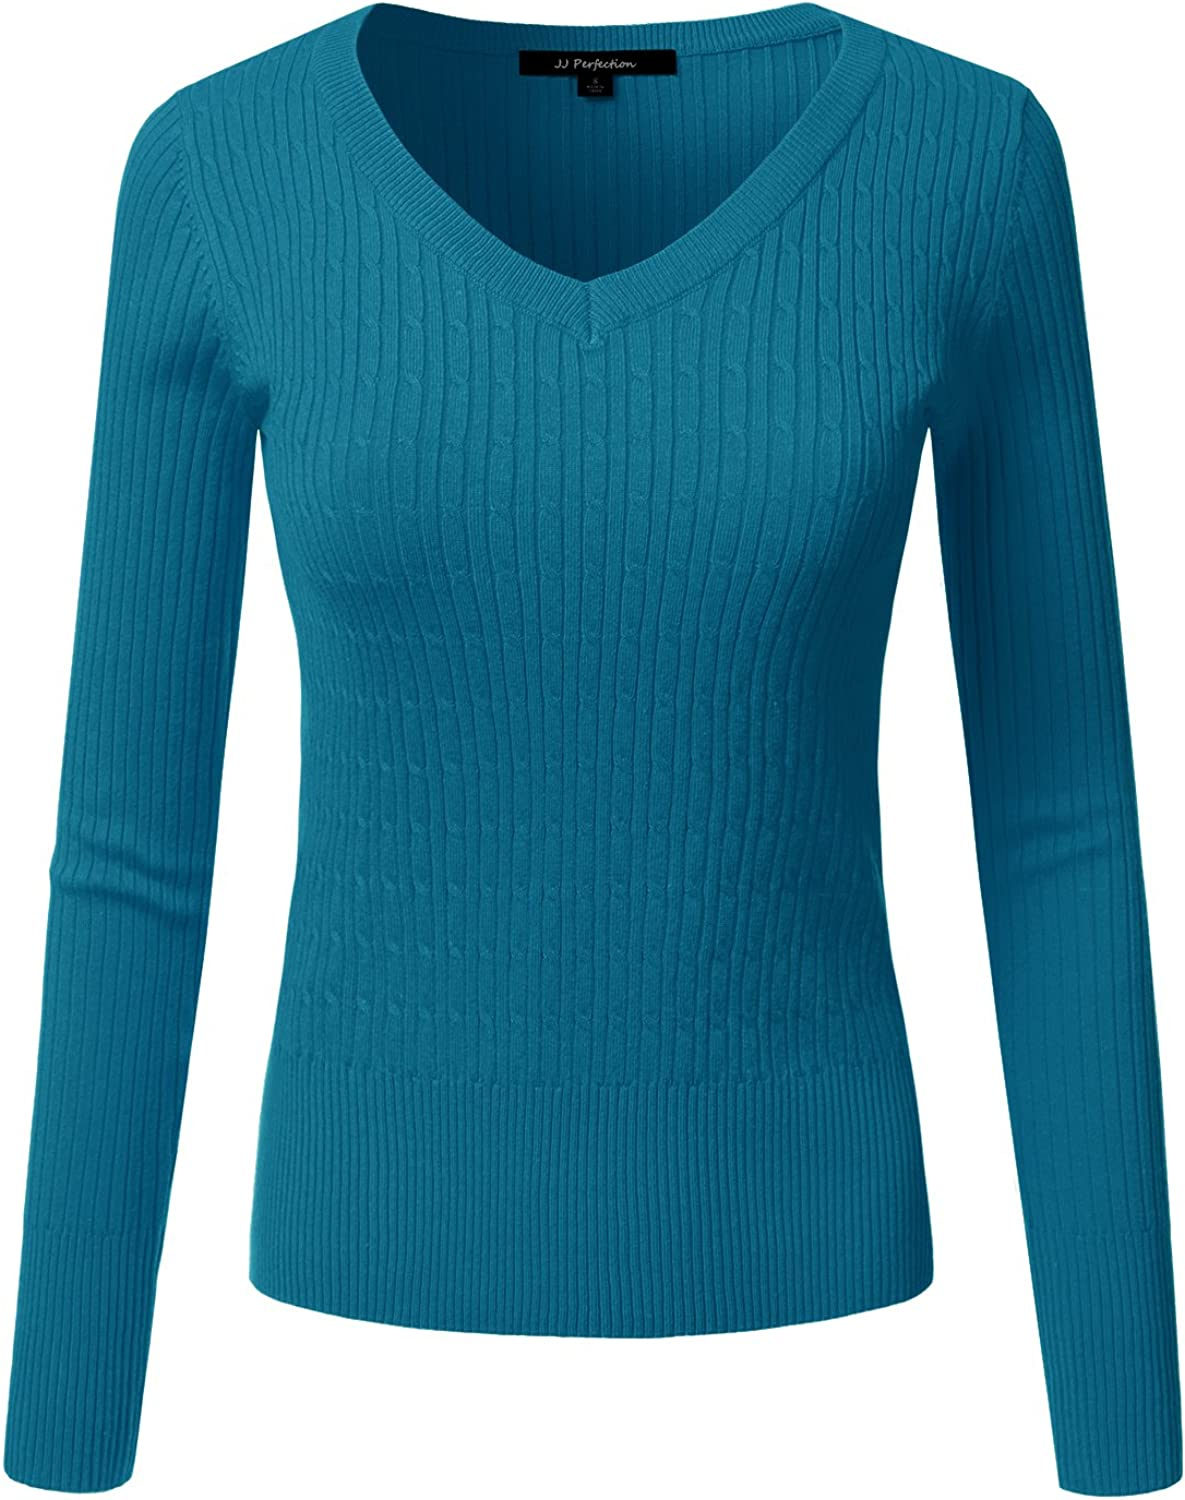 JJ Perfection Women's Long Sleeve VNeck Cable Knit Classic Sweater